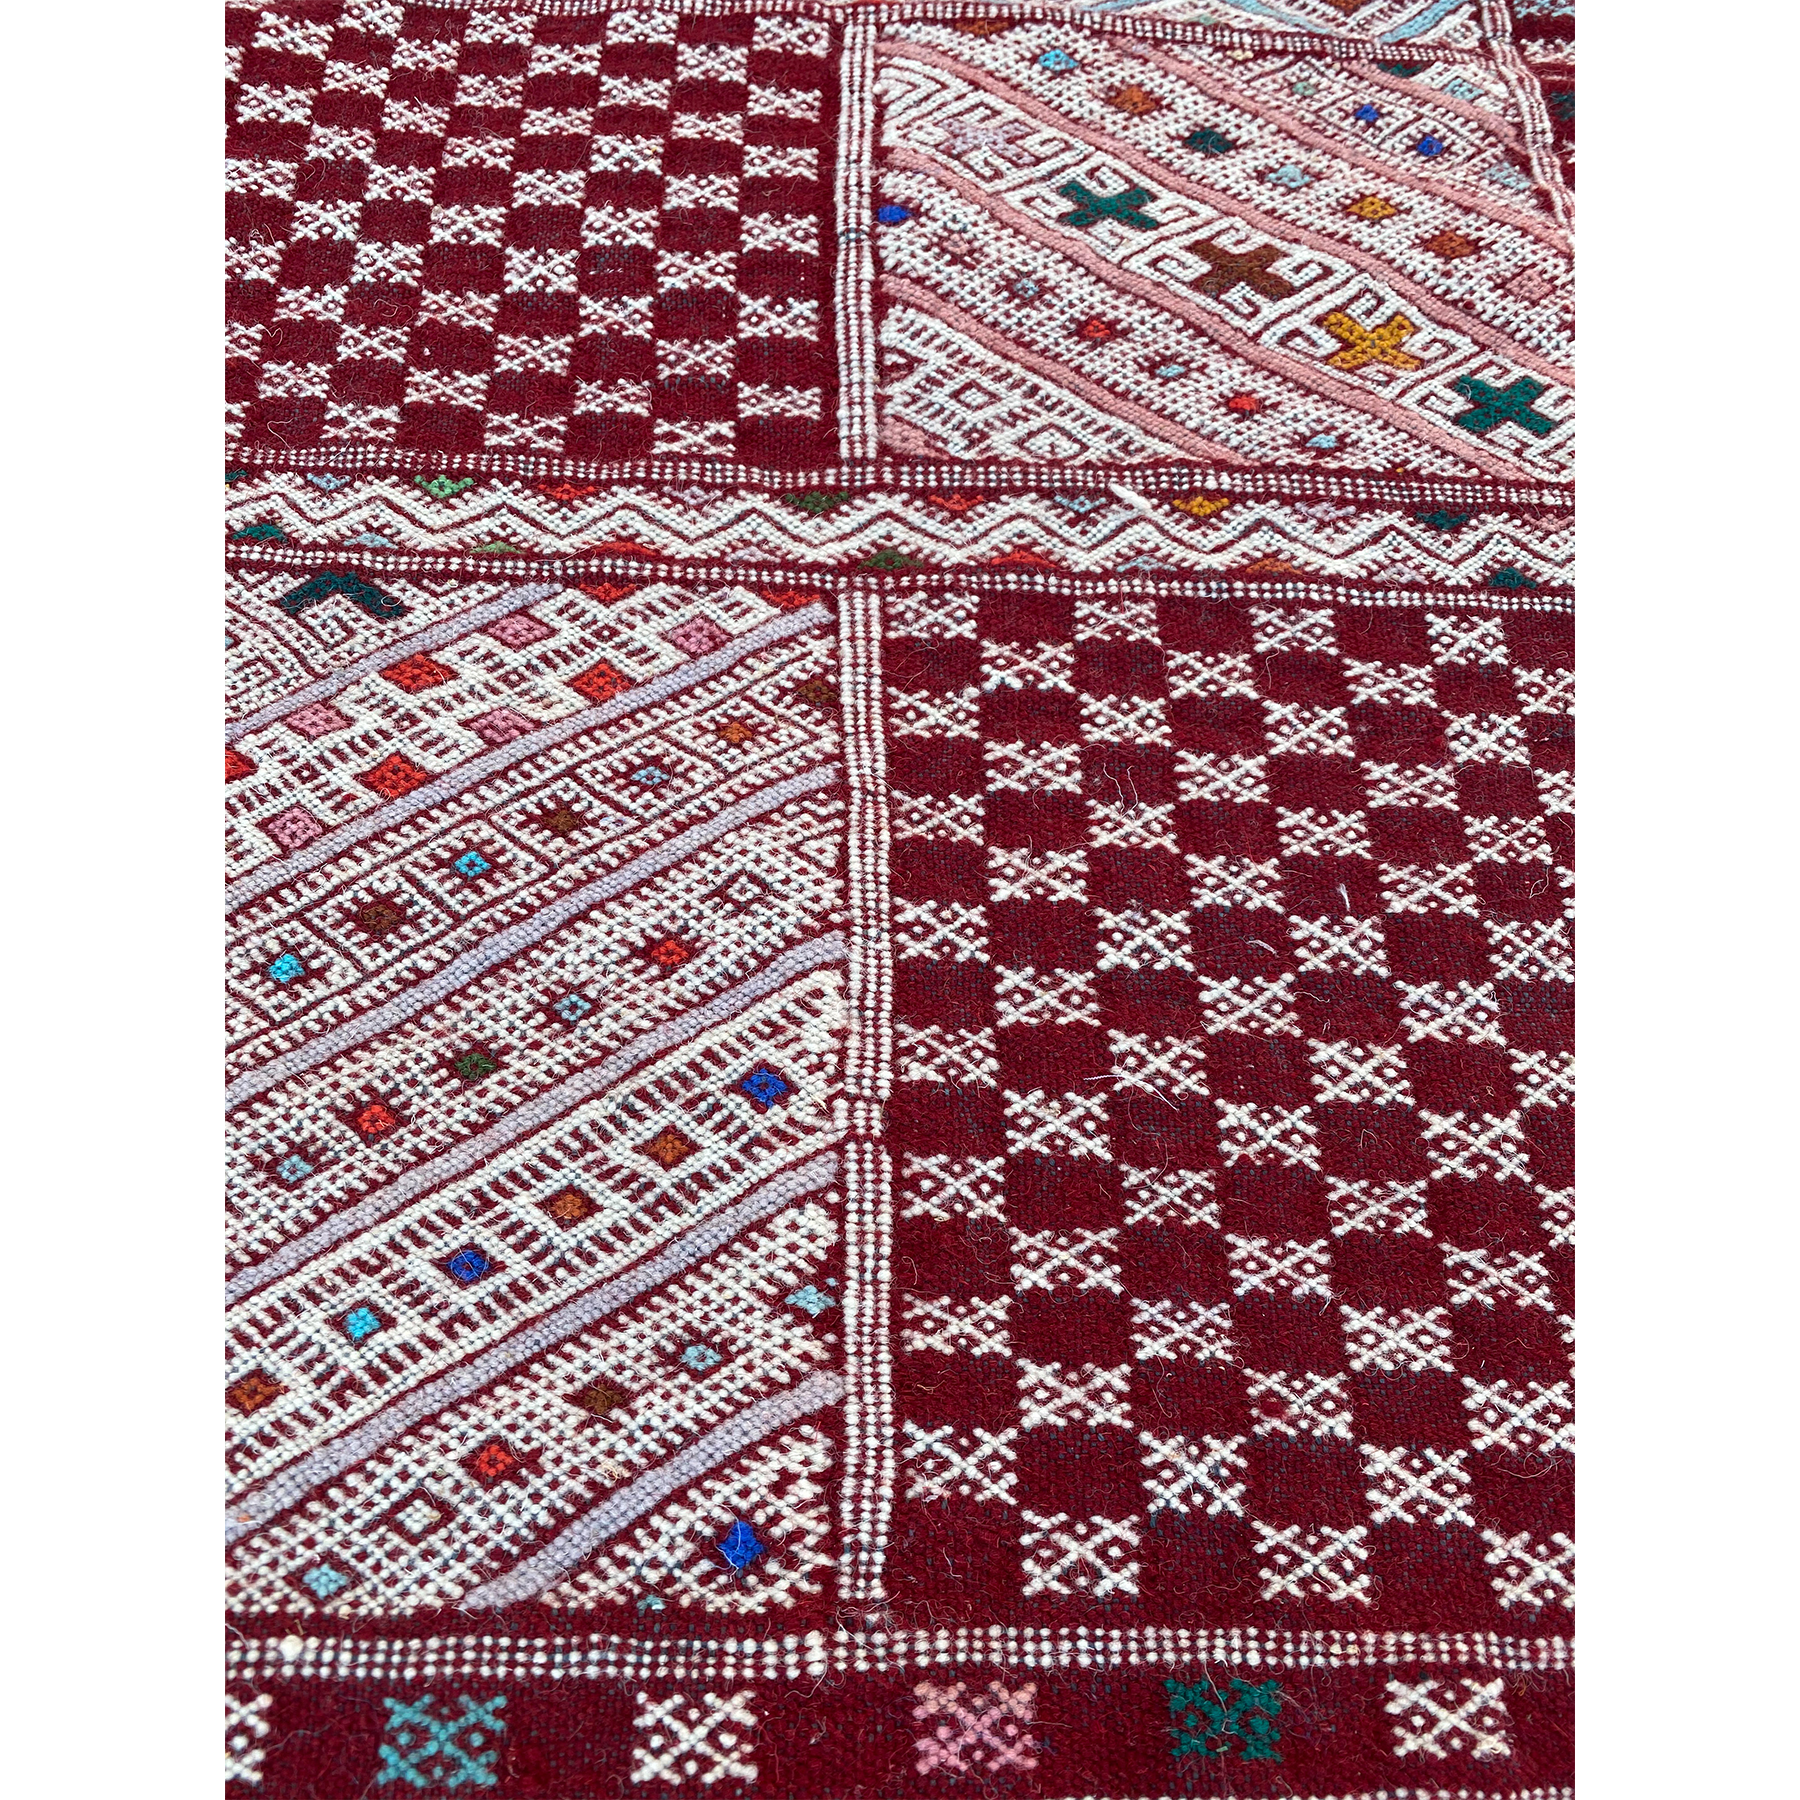 Red Moroccan flatweave kilim with geometric pattern design - Kantara | Moroccan Rugs